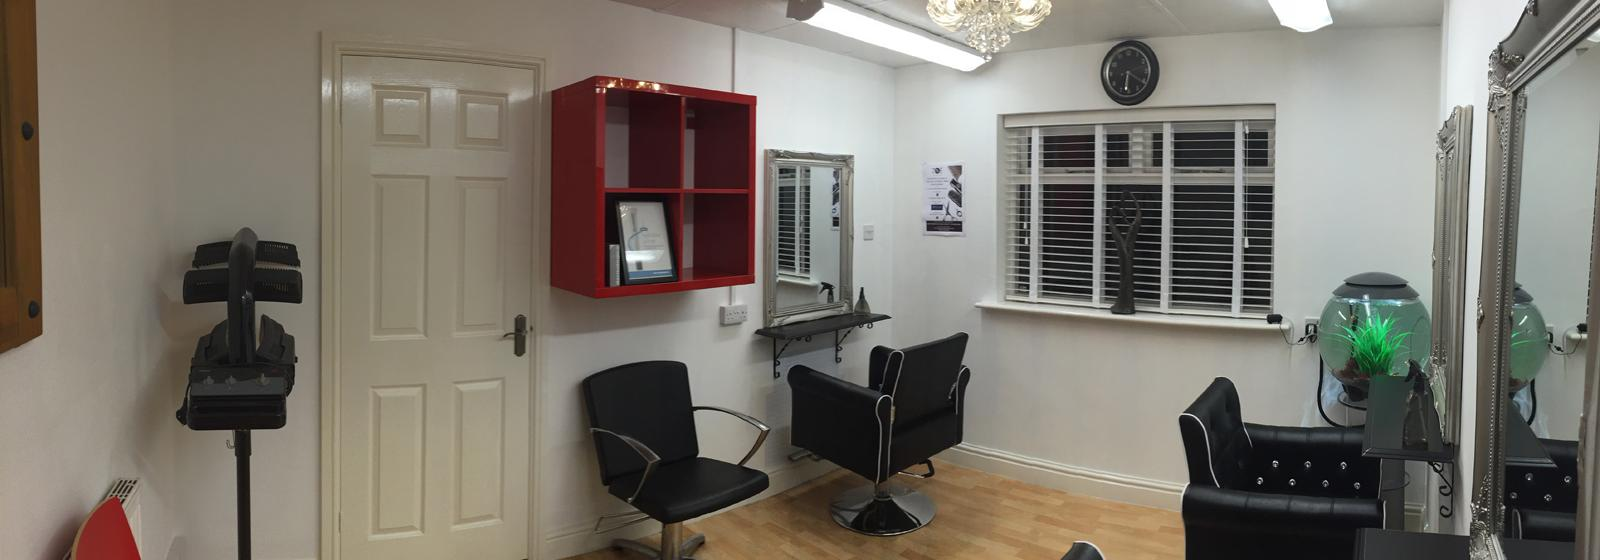 Zoes Salon - Colouring Room